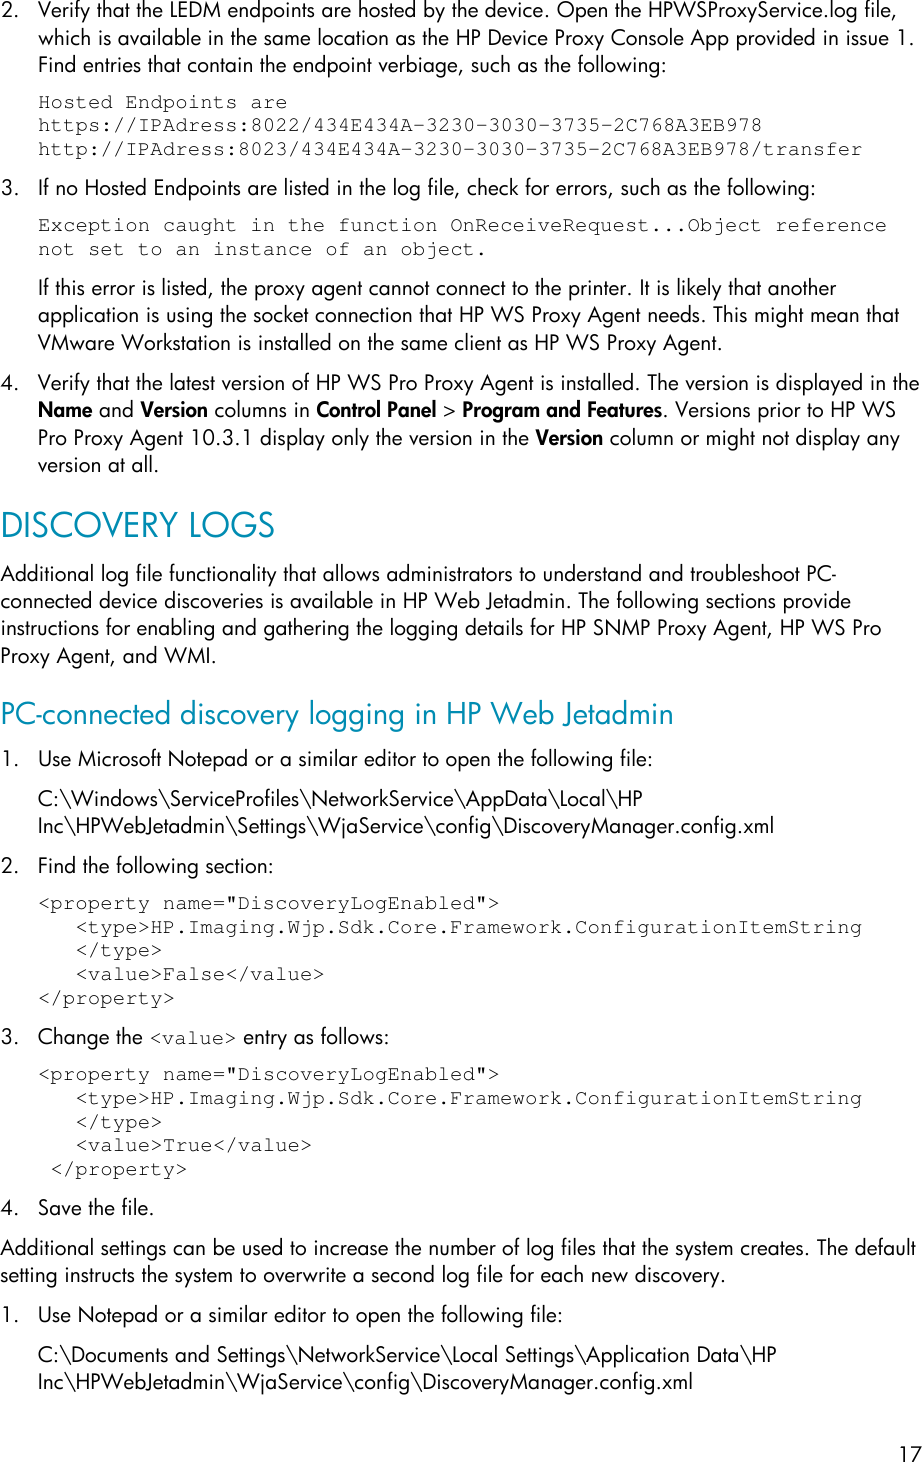 HP Discovering PC Connected Devices In Web Jetadmin ENWW